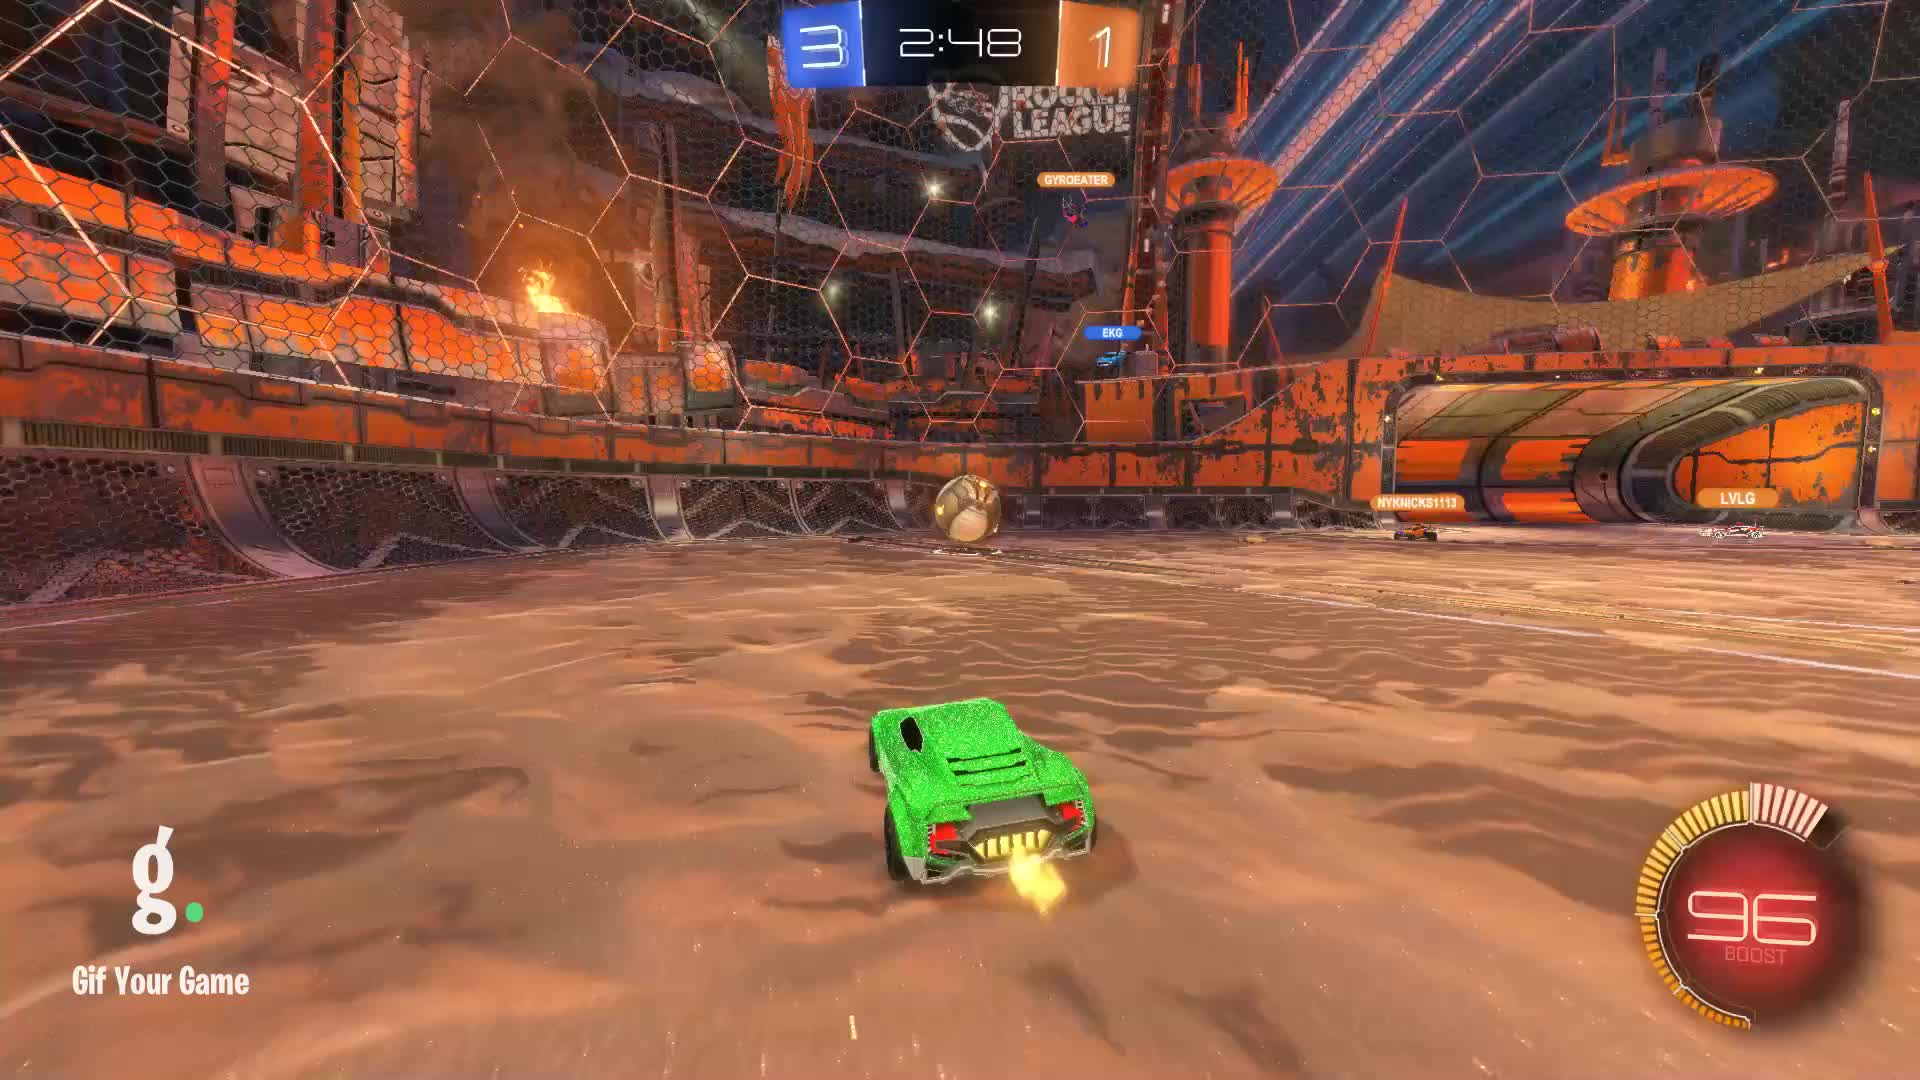 Gif Your Game, GifYourGame, Goal, Rocket League, RocketLeague, SI Trickz, Goal 5: SI Trickz GIFs